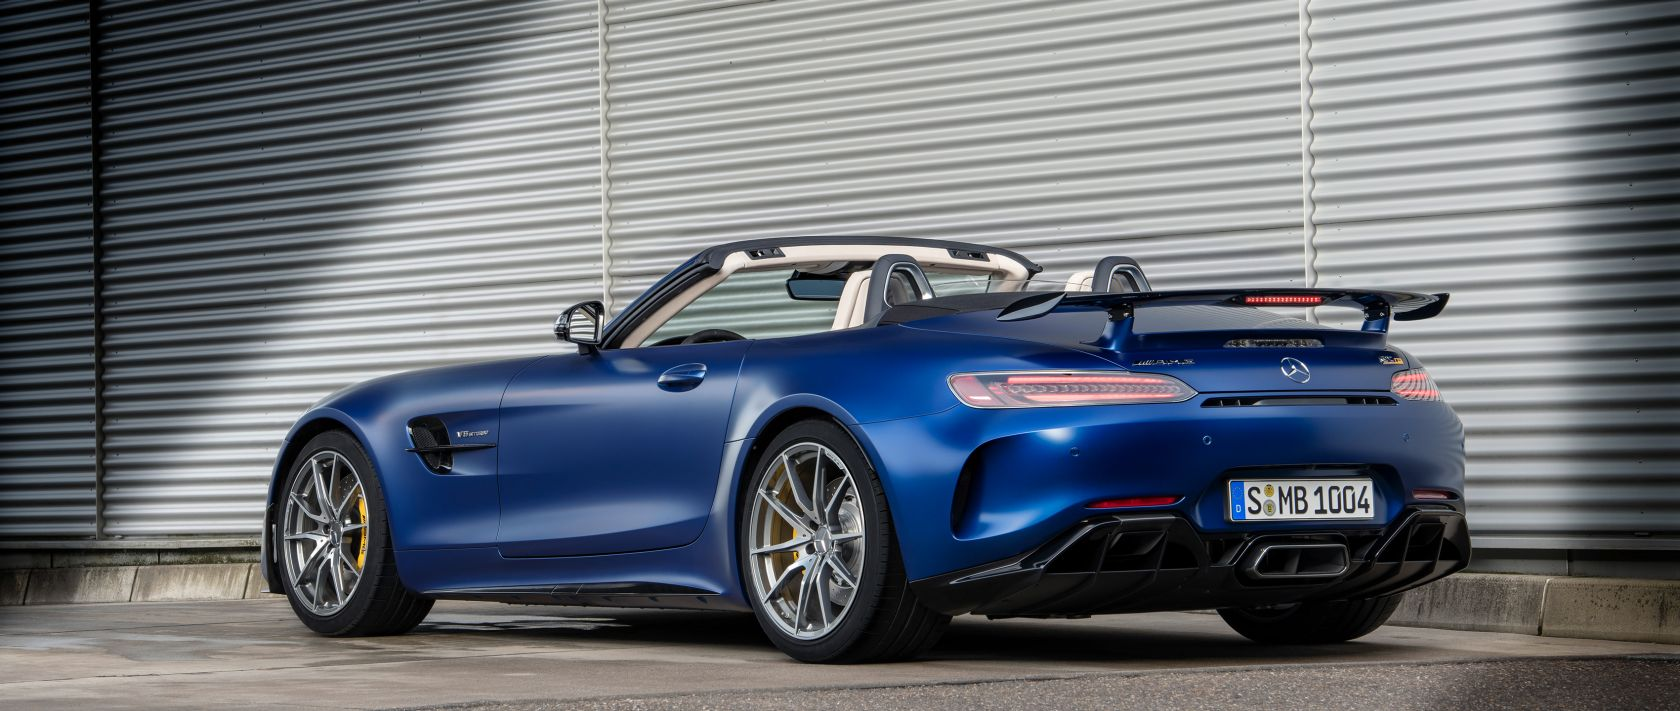 The new Mercedes-AMG GT R Roadster (R 190) in designo brilliant blue magno in rear view.